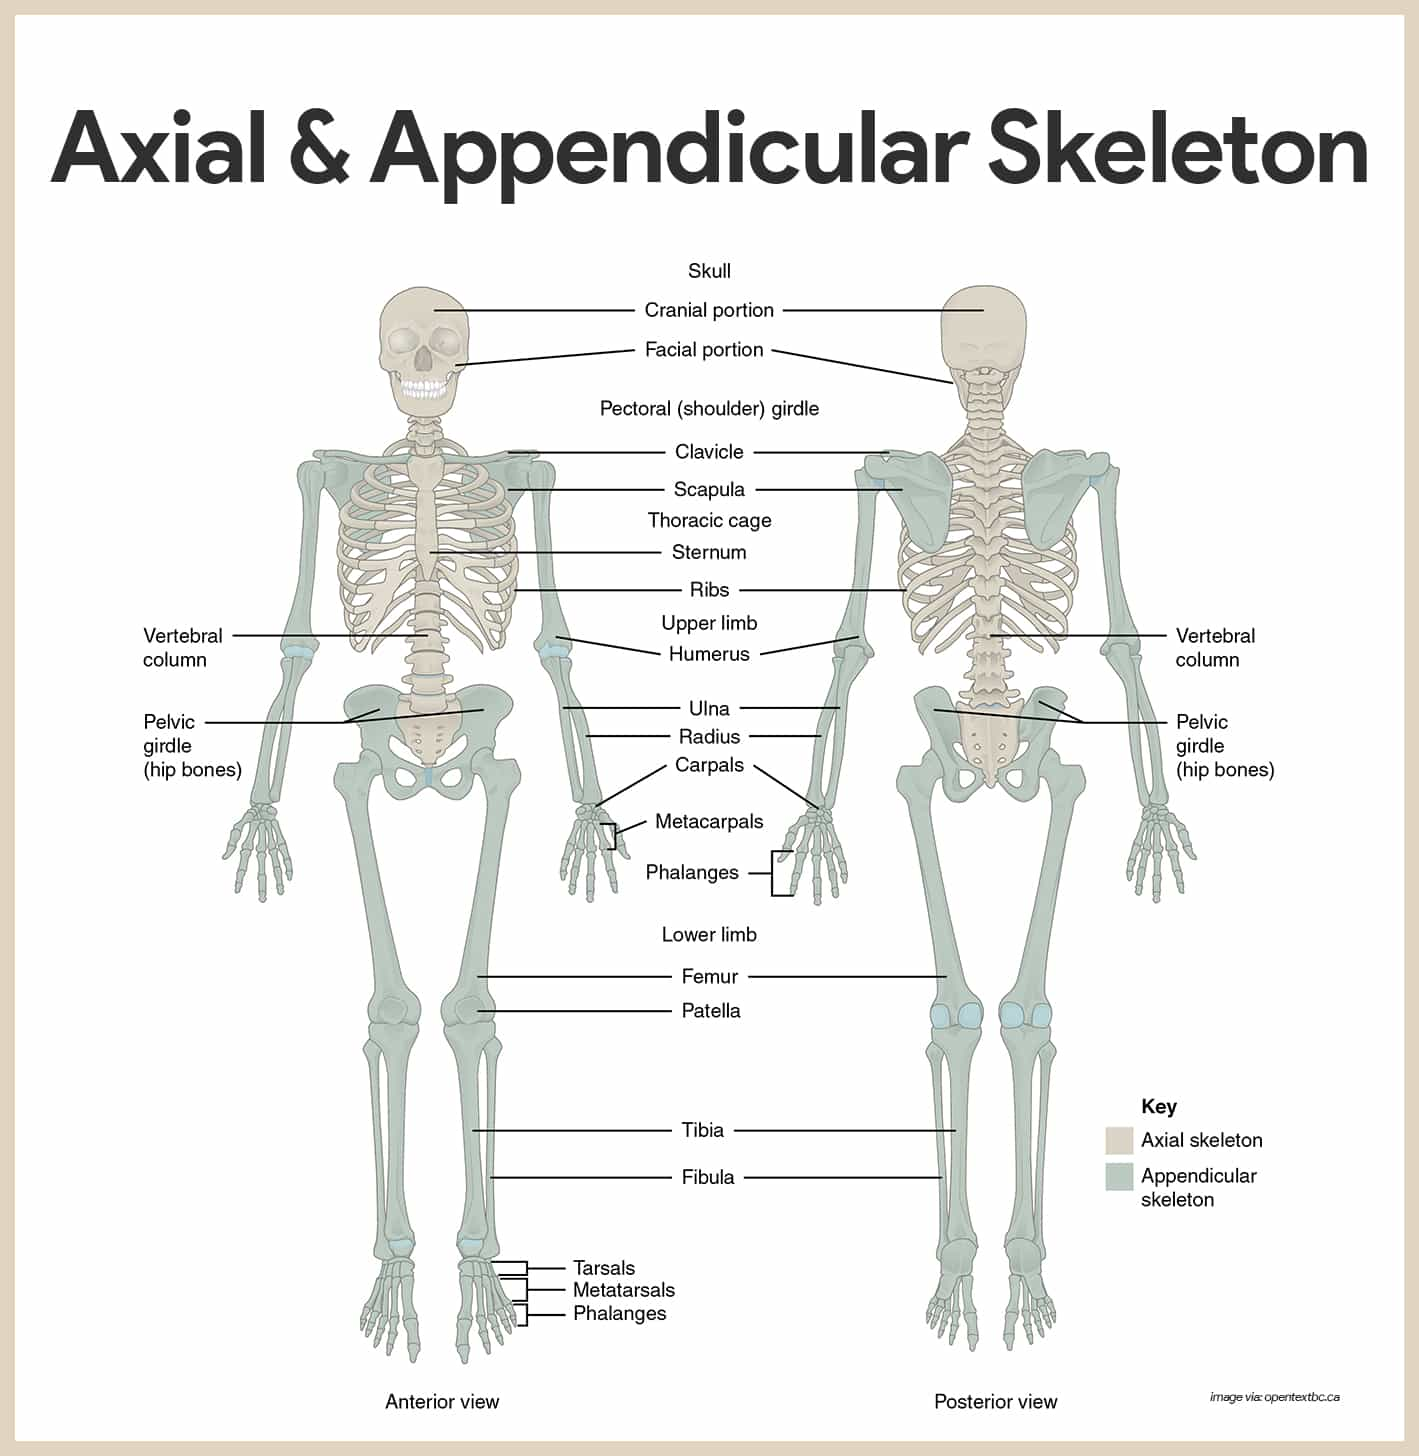 Skeletal System Anatomy And Physiology Nurseslabs